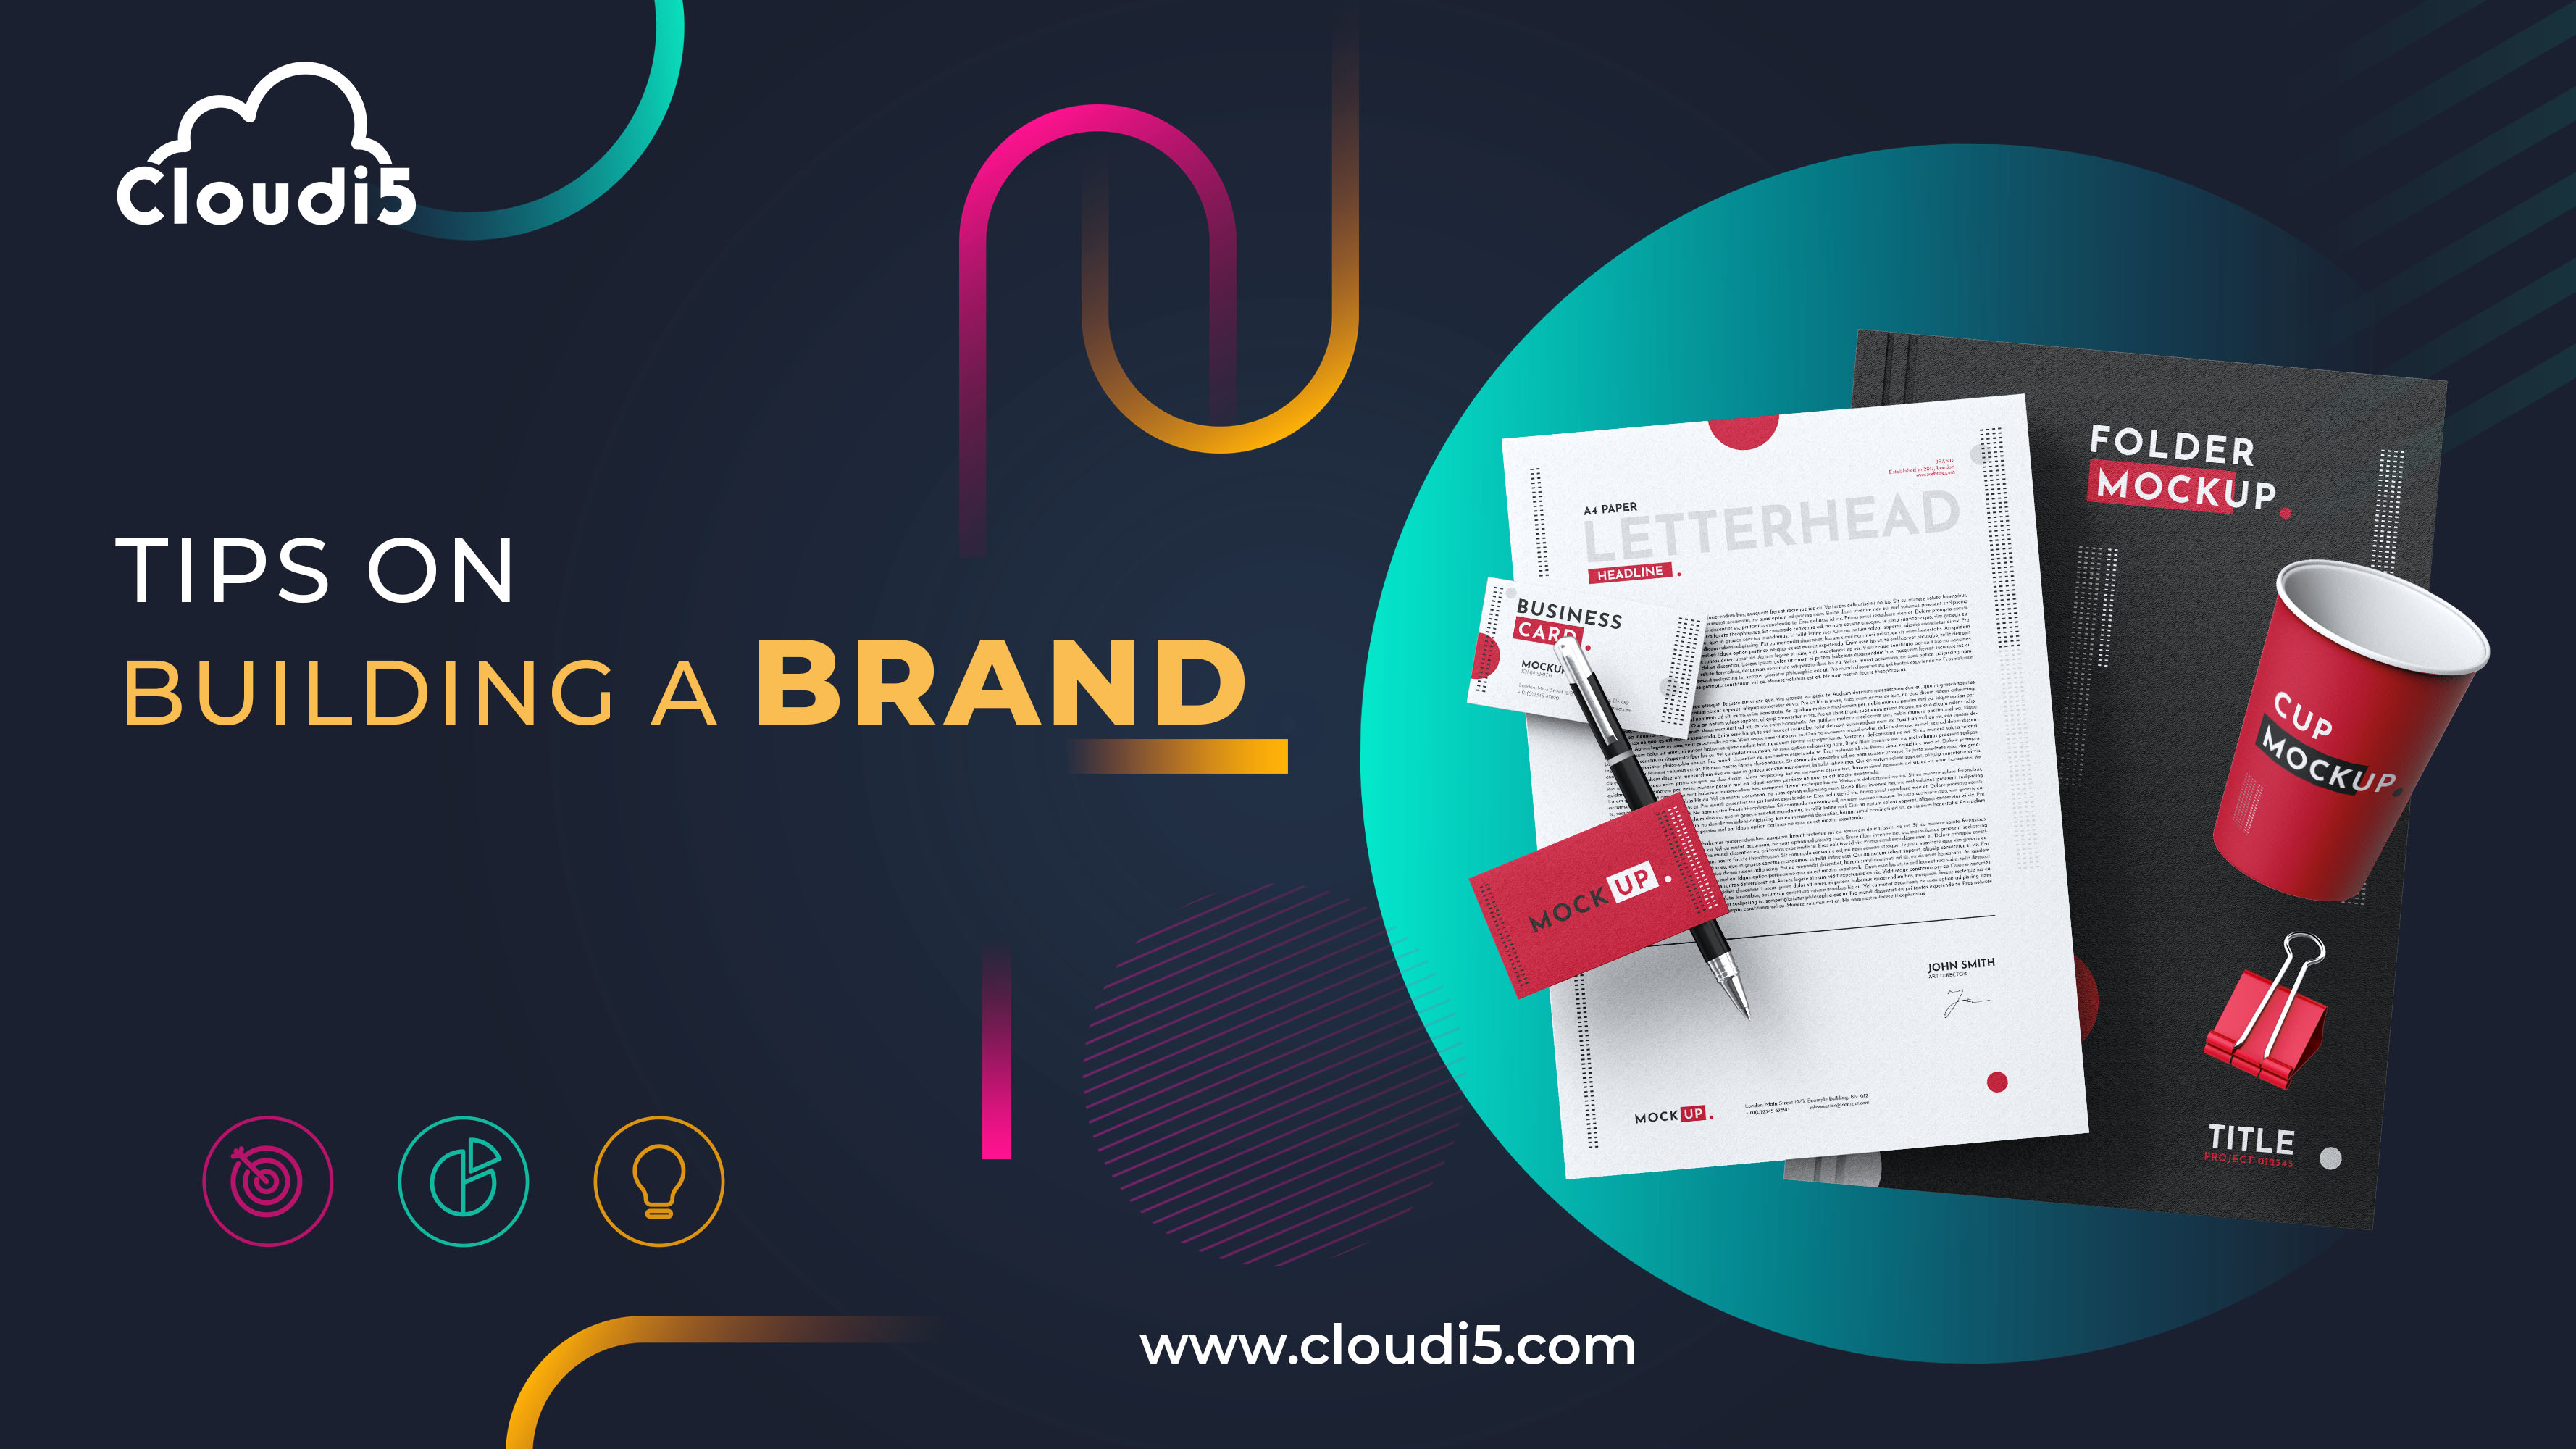 Tips on Building a Brand